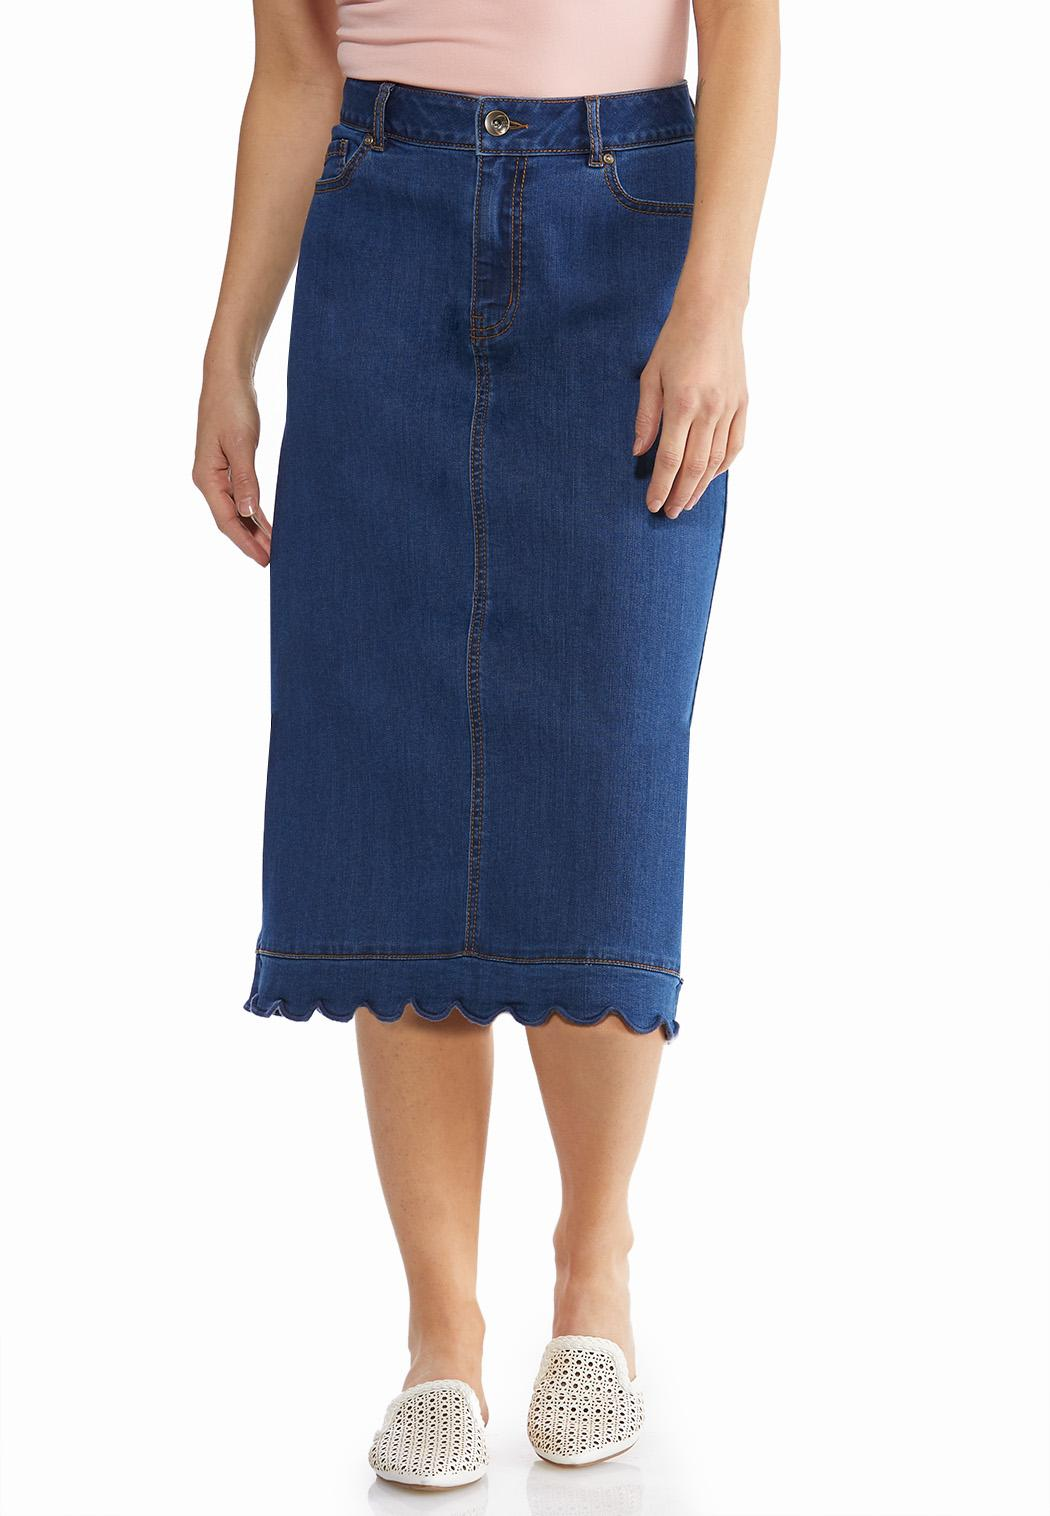 Cato Size 16 Skirt Denim Flare Butterfly Stiching Skirts Women's Clothing